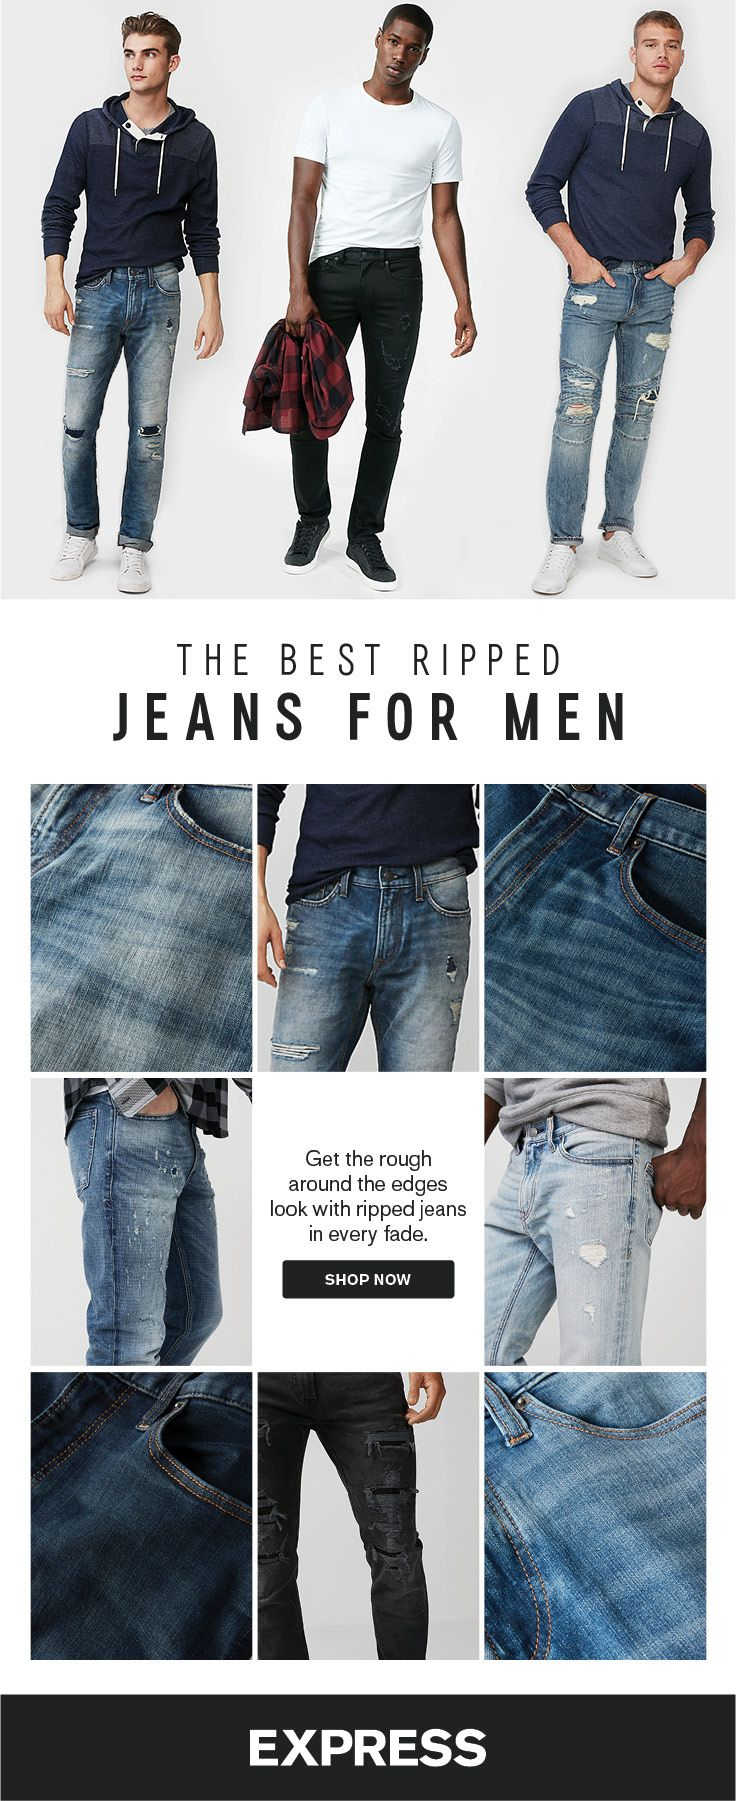 The best ripped jeans for men are at Express. Shop dark wash jeans, light wash jeans, destruction and more in a variety of fits to find your perfect pair. Whether you like men's skinny jeans or you prefer a relaxed fit, Express has the pair for you.